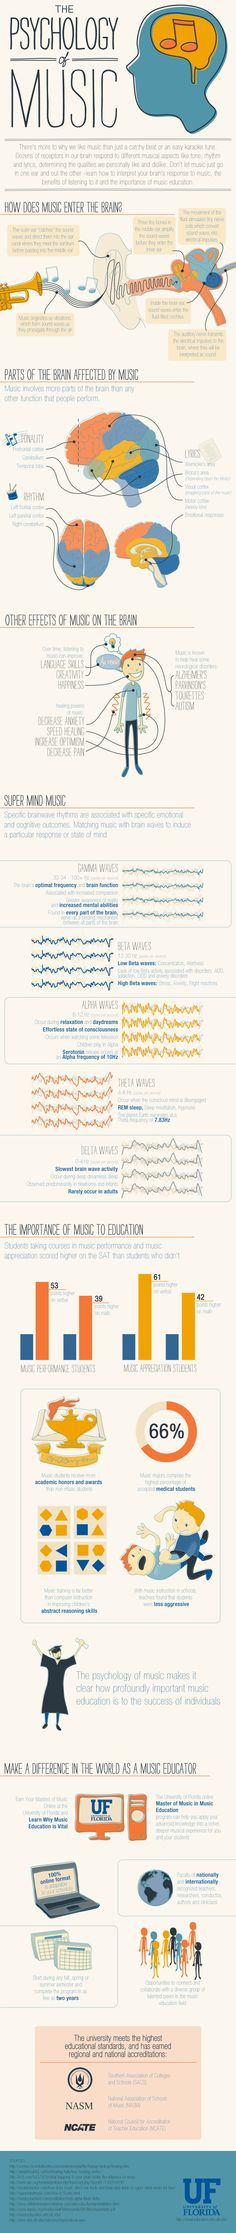 Great infopic of how music affects the brain!